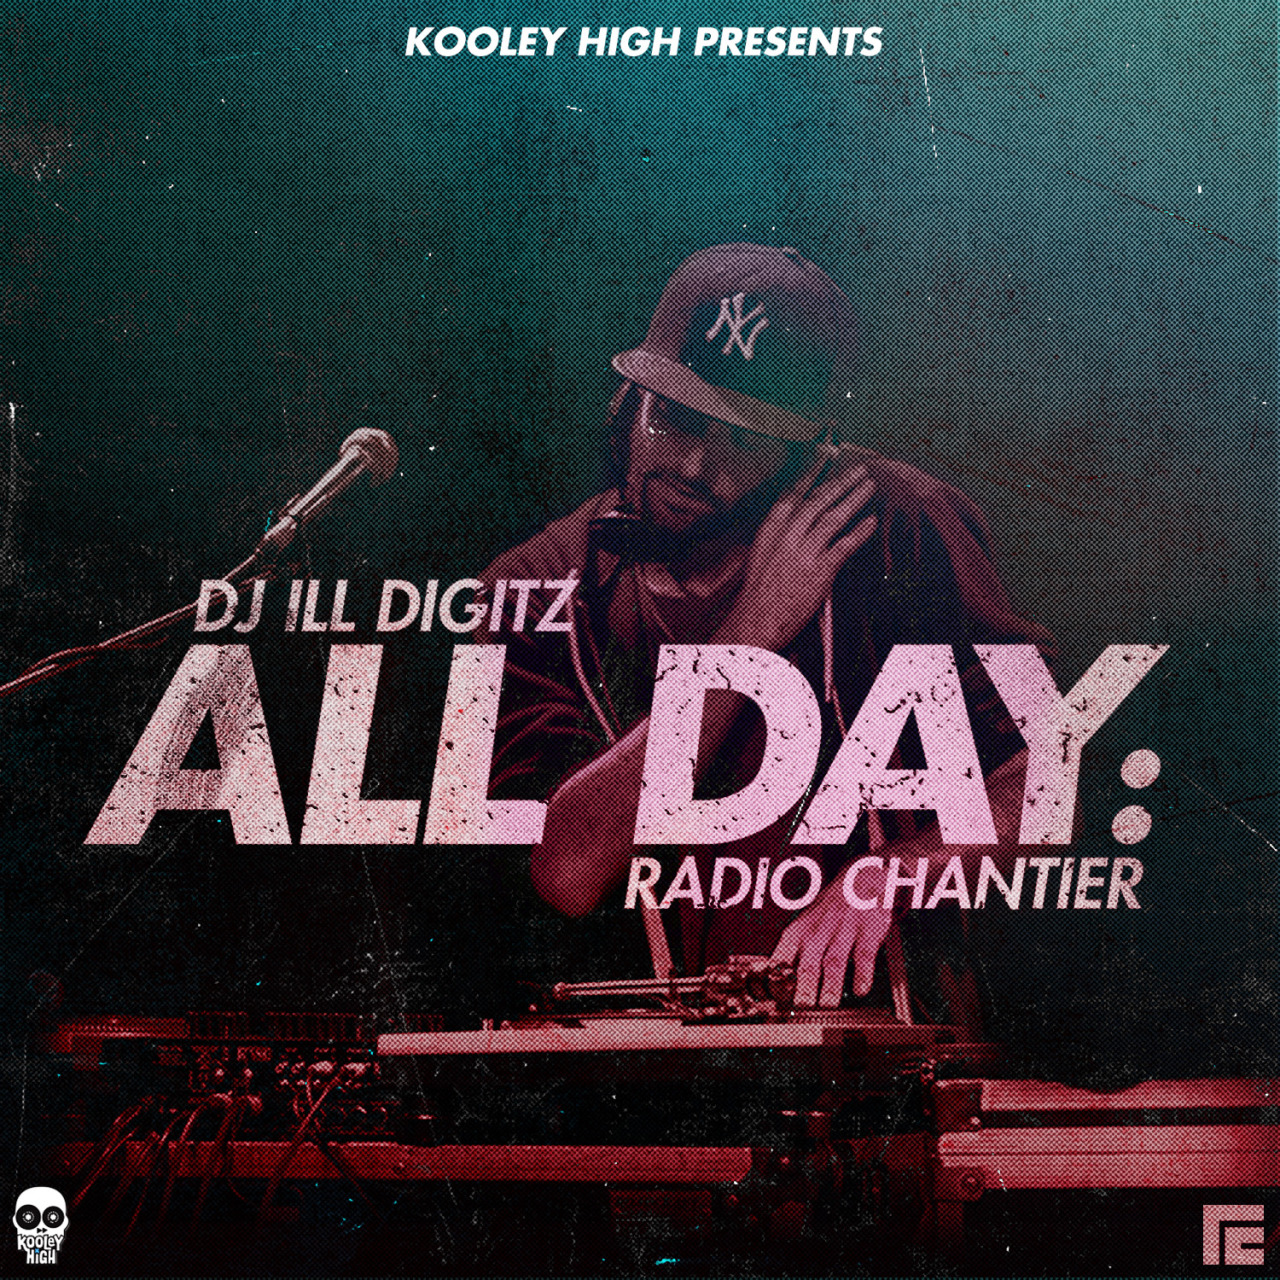 radiochantier :     Kooley high presents Dj Ill Digitz All Day : Radio Chantier